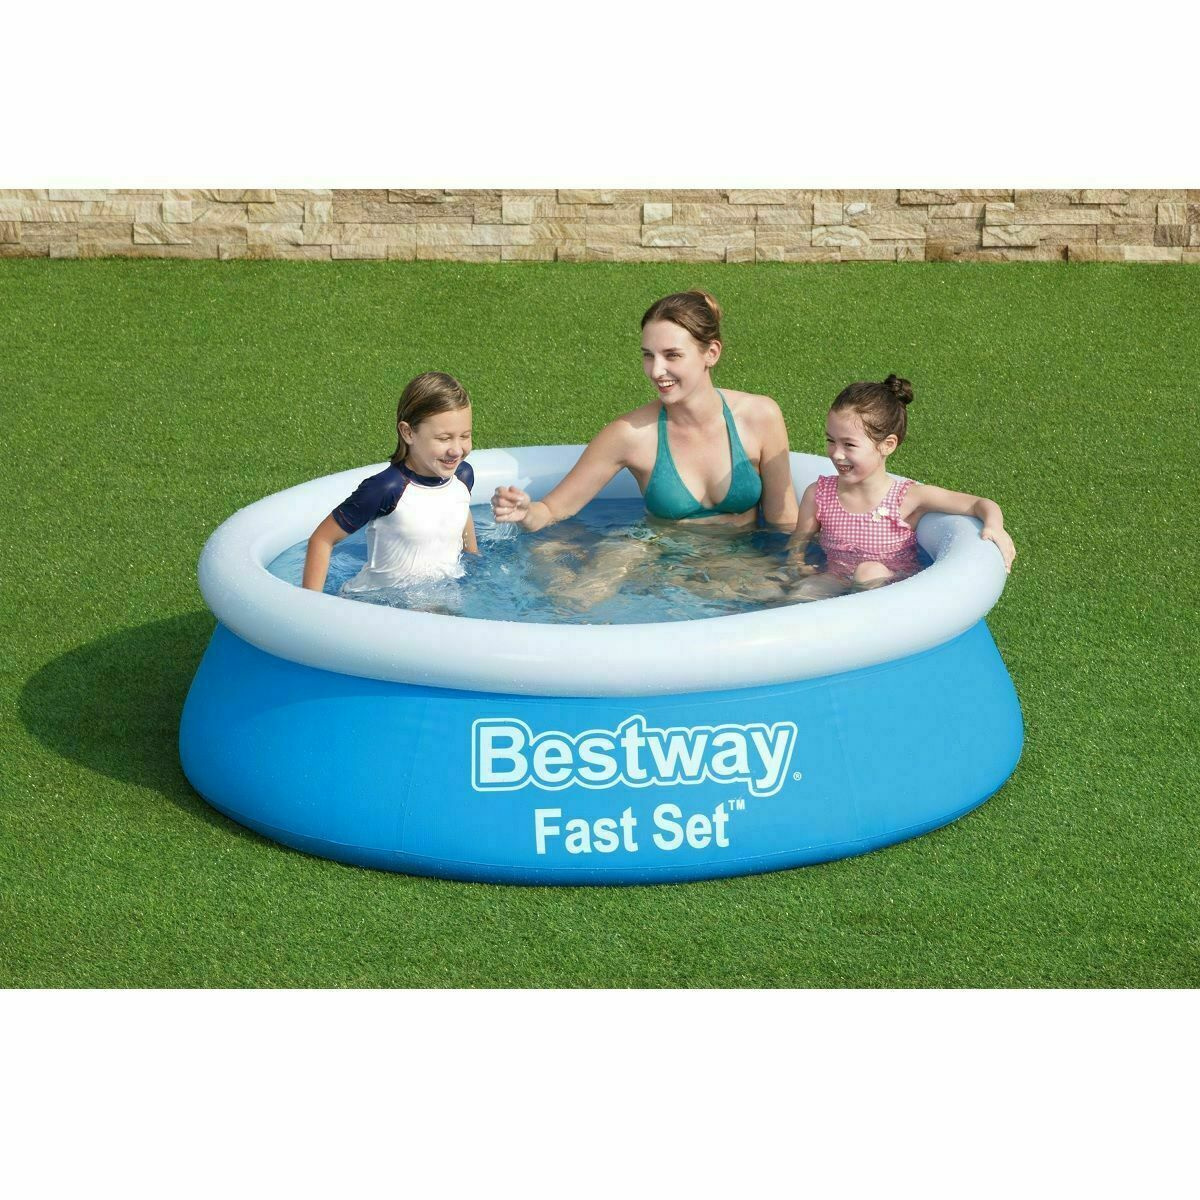 Bestway Inflatable Fast Set Fill And Rise Pool Kids Will Have An Exciting Time D